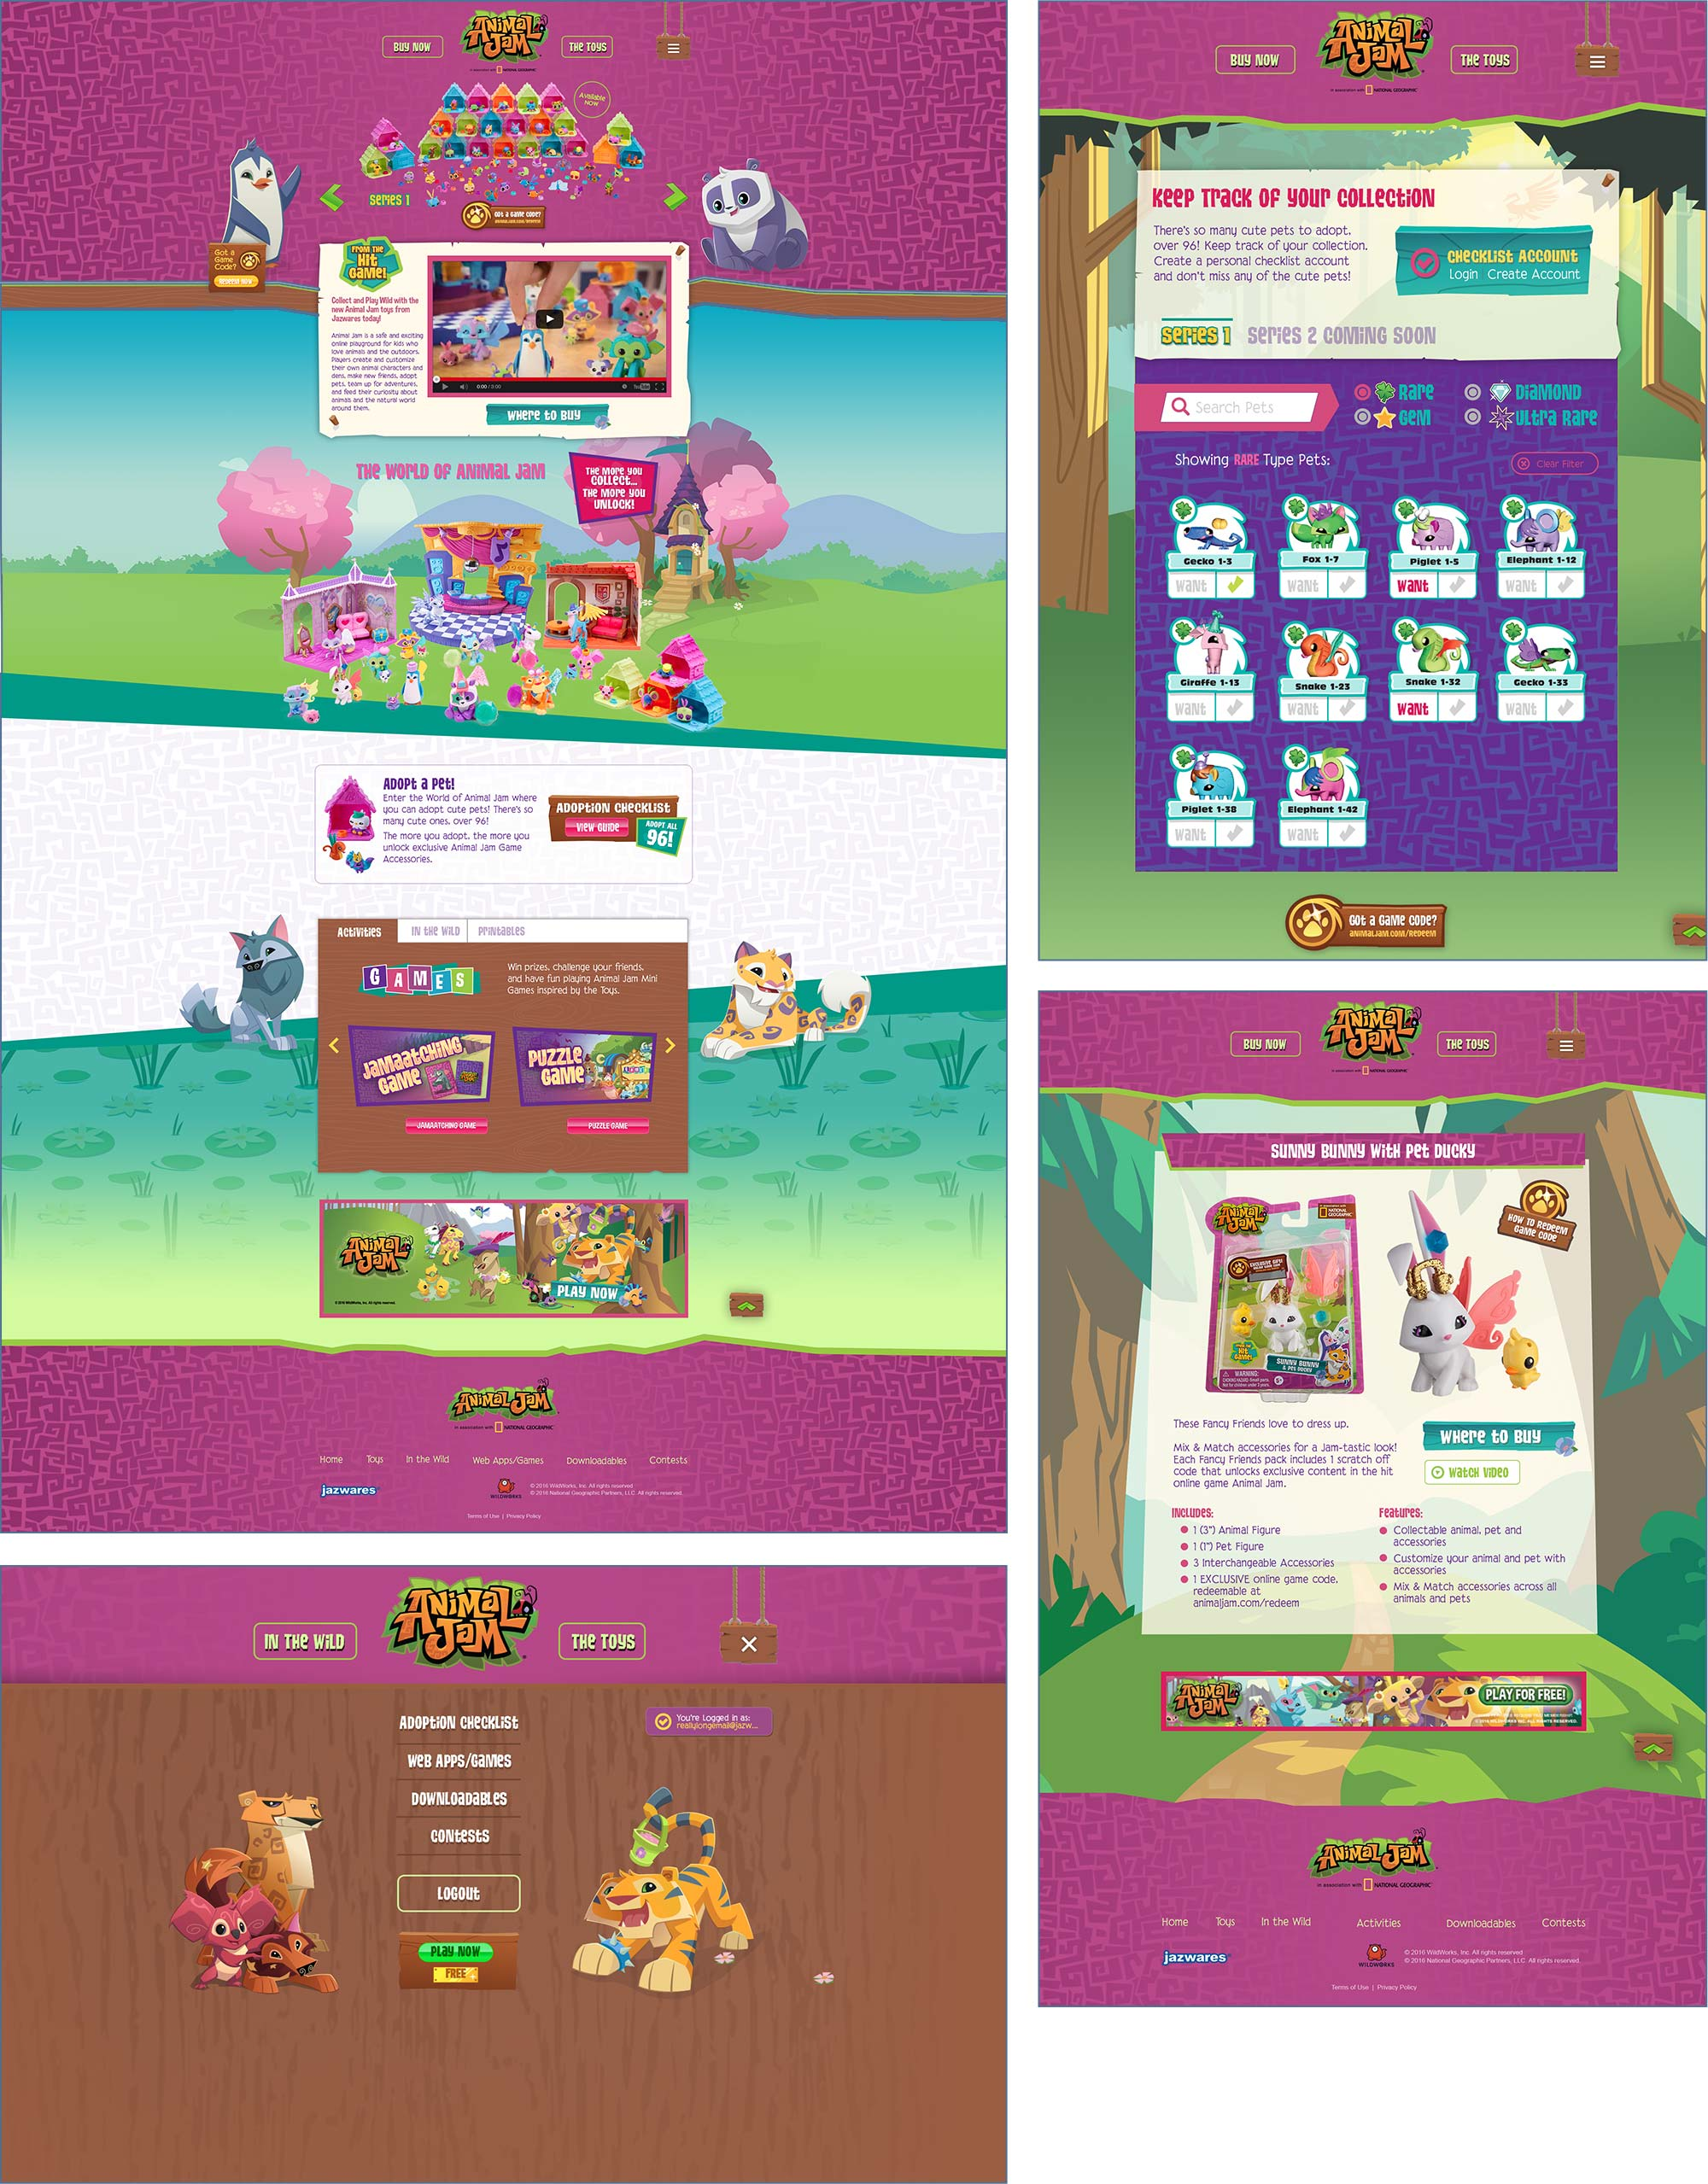 Animal Jam website design